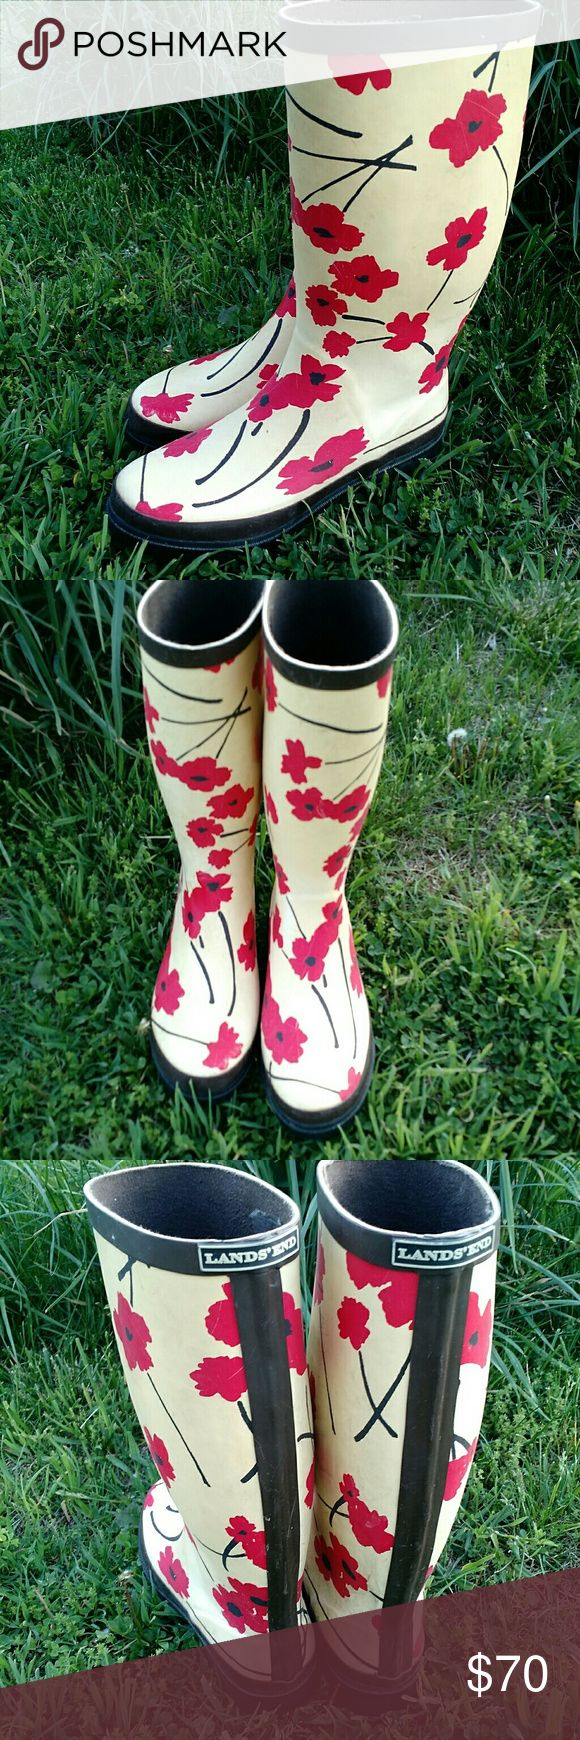 {Lands' End} Poppy Flower Wellies Sz 9 A rare find. These wellie-style rsin boots from Lands' End are super cute and very functional. Around town or in the back yard. Slight discoloration in spots of the cream color background (from age). Otherwise excellent condition. Lands' End Shoes Winter & Rain Boots